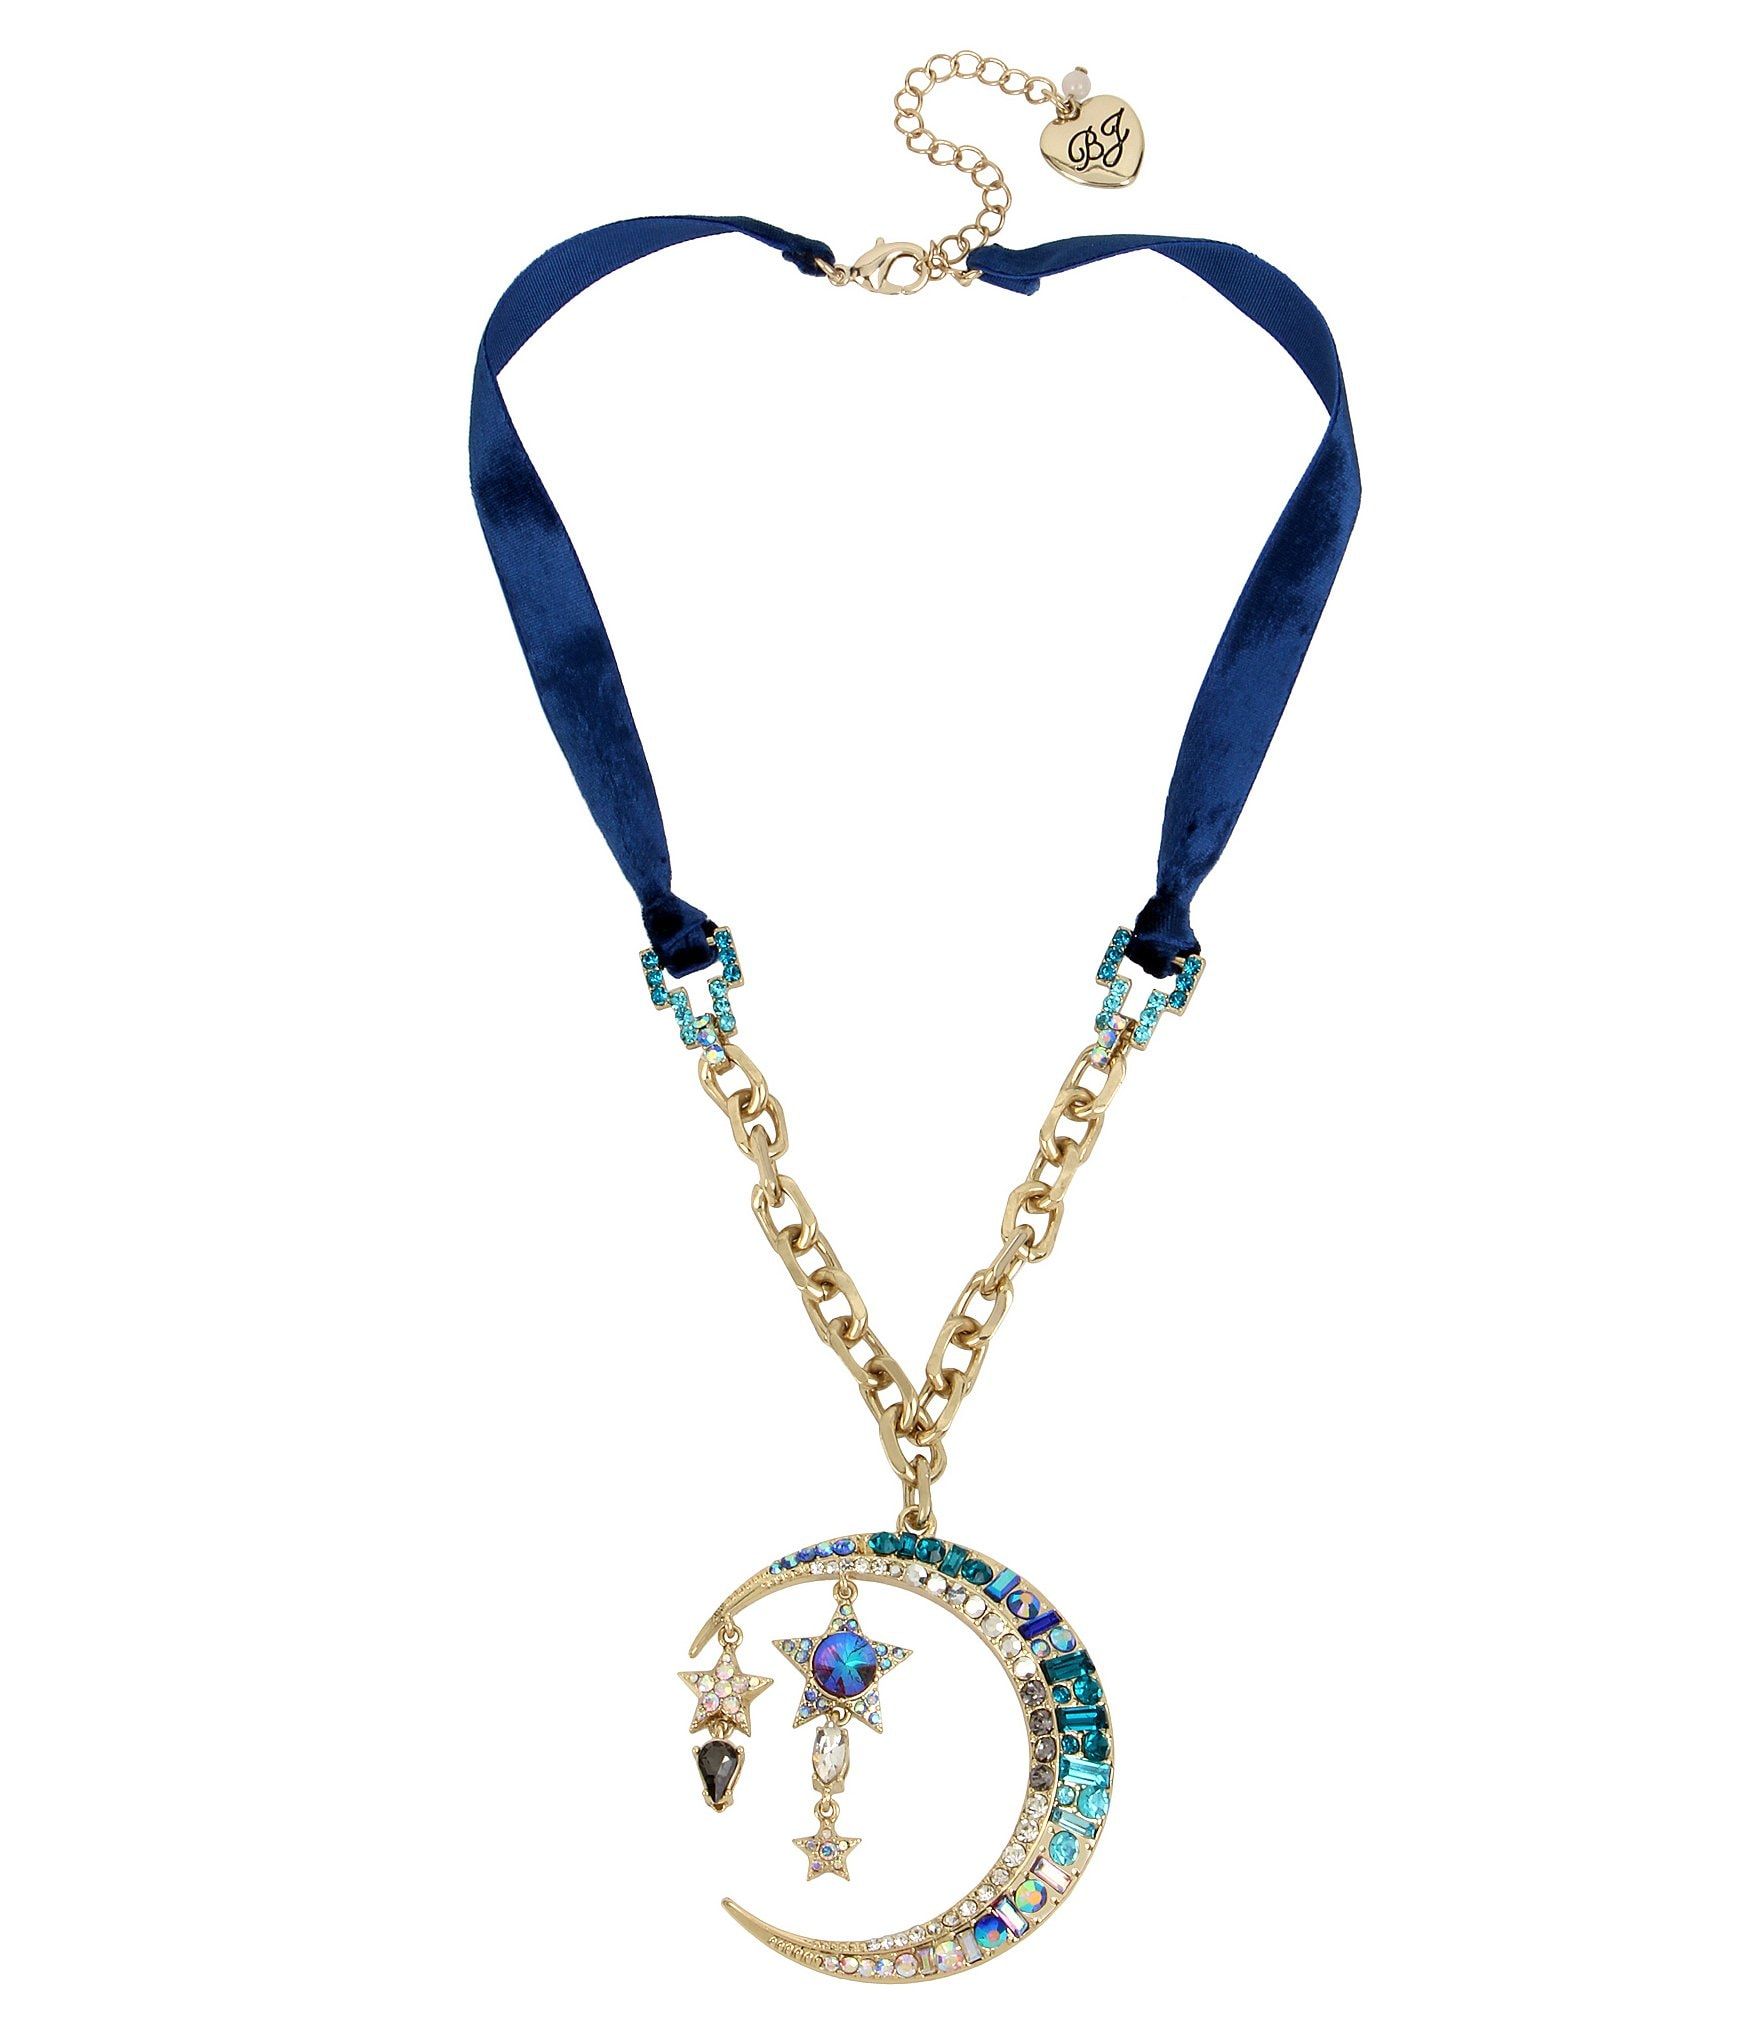 Betsey johnson celestial blue moon pendant necklace dillards mozeypictures Choice Image